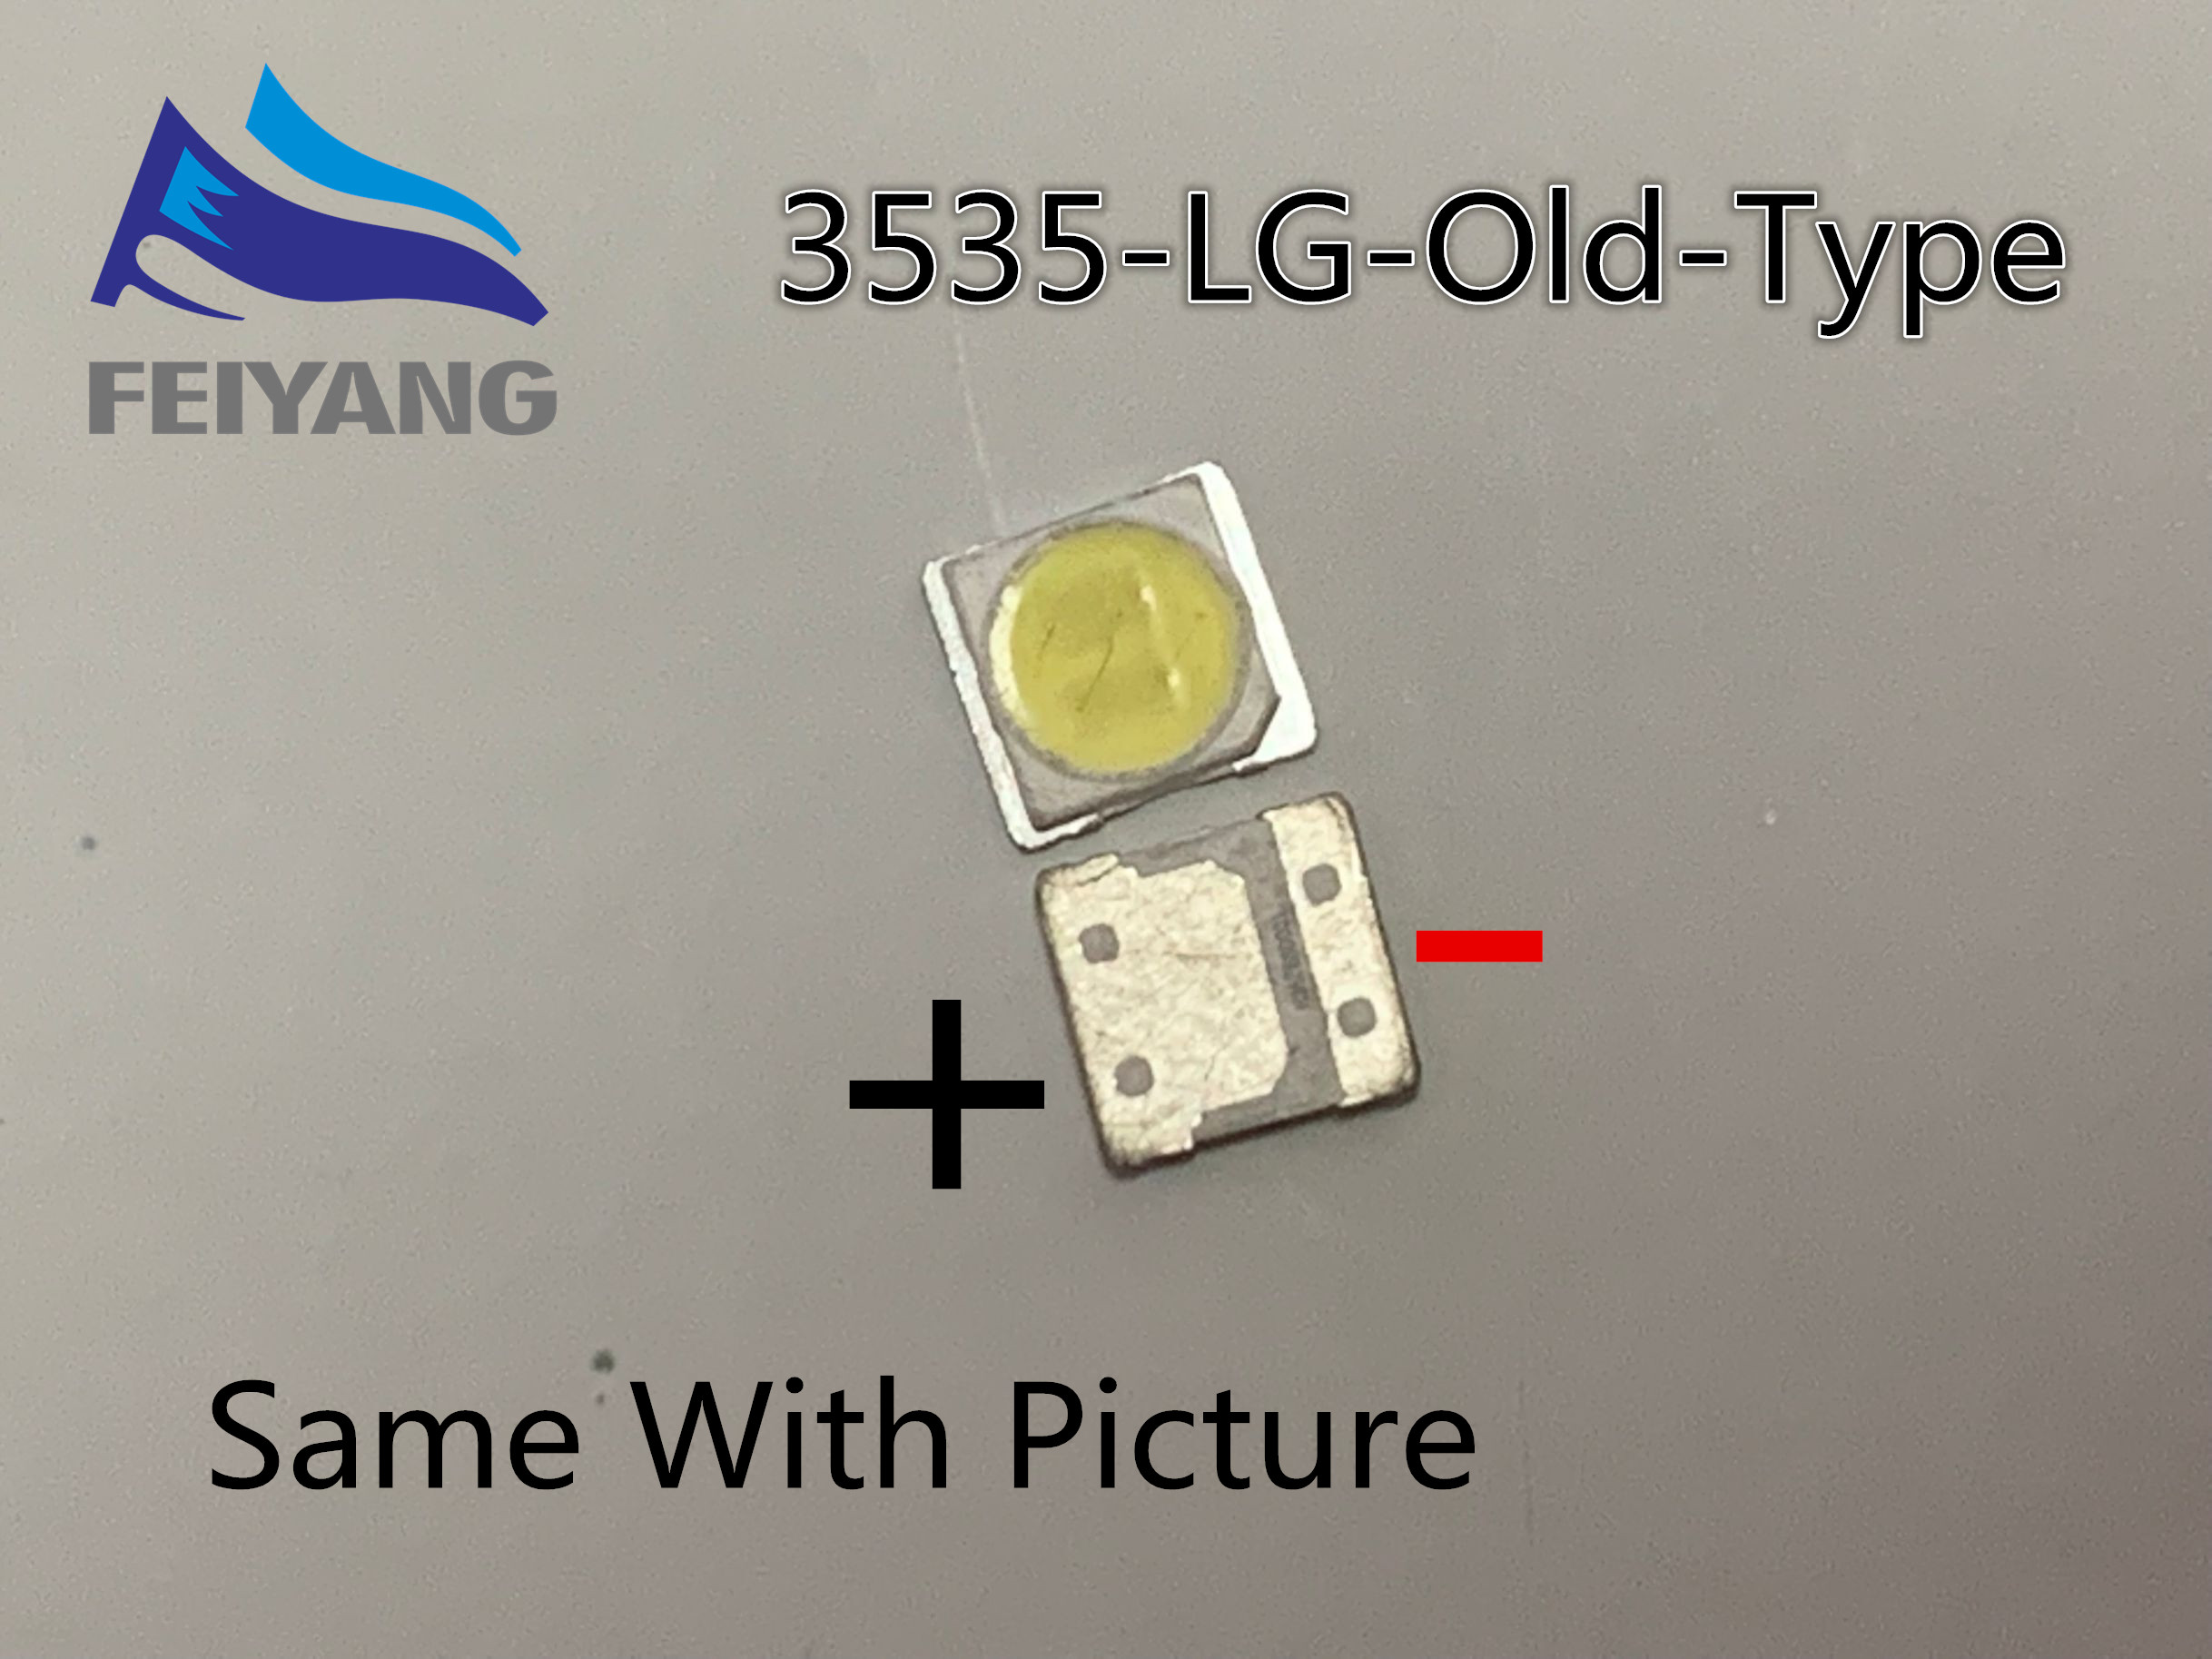 100PCS FOR LCD TV Repair LG Led TV Backlight Strip Lights With Light-emitting Diode 3535 SMD LED 3535 2W 6V 150LM